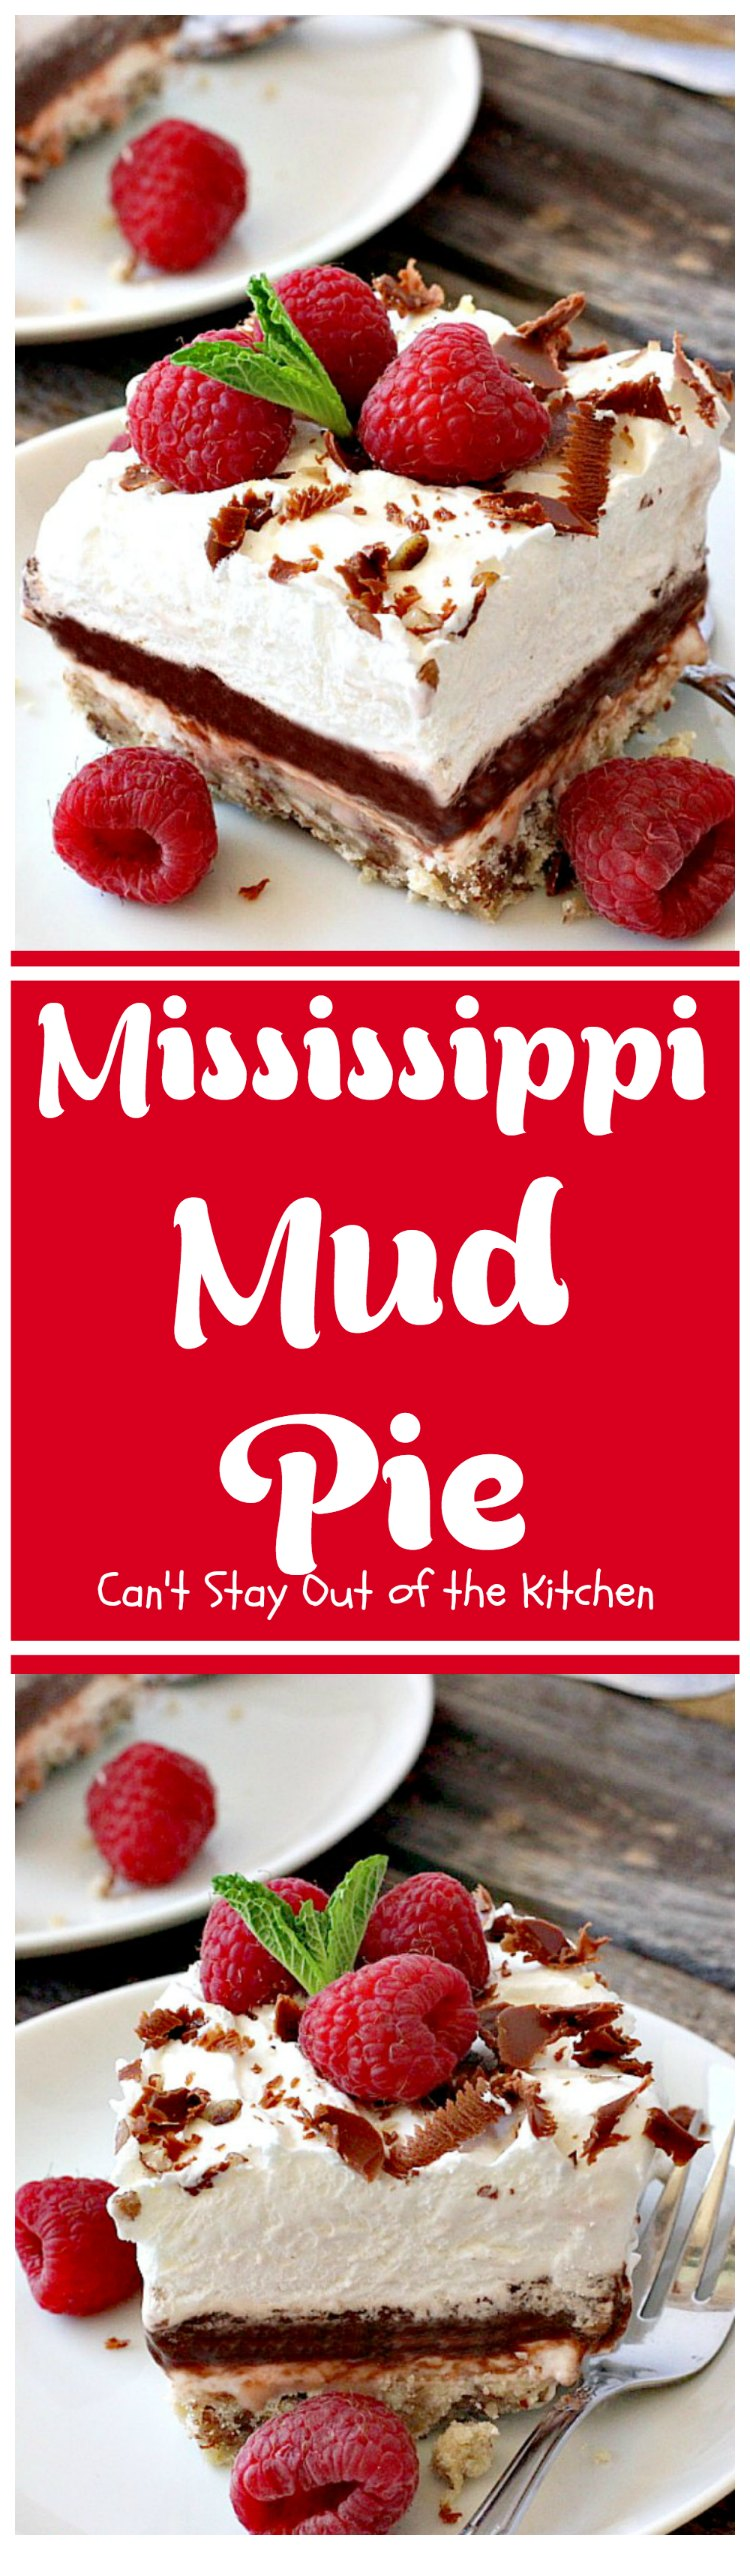 Mississippi Mud Pie - Can't Stay Out of the Kitchen